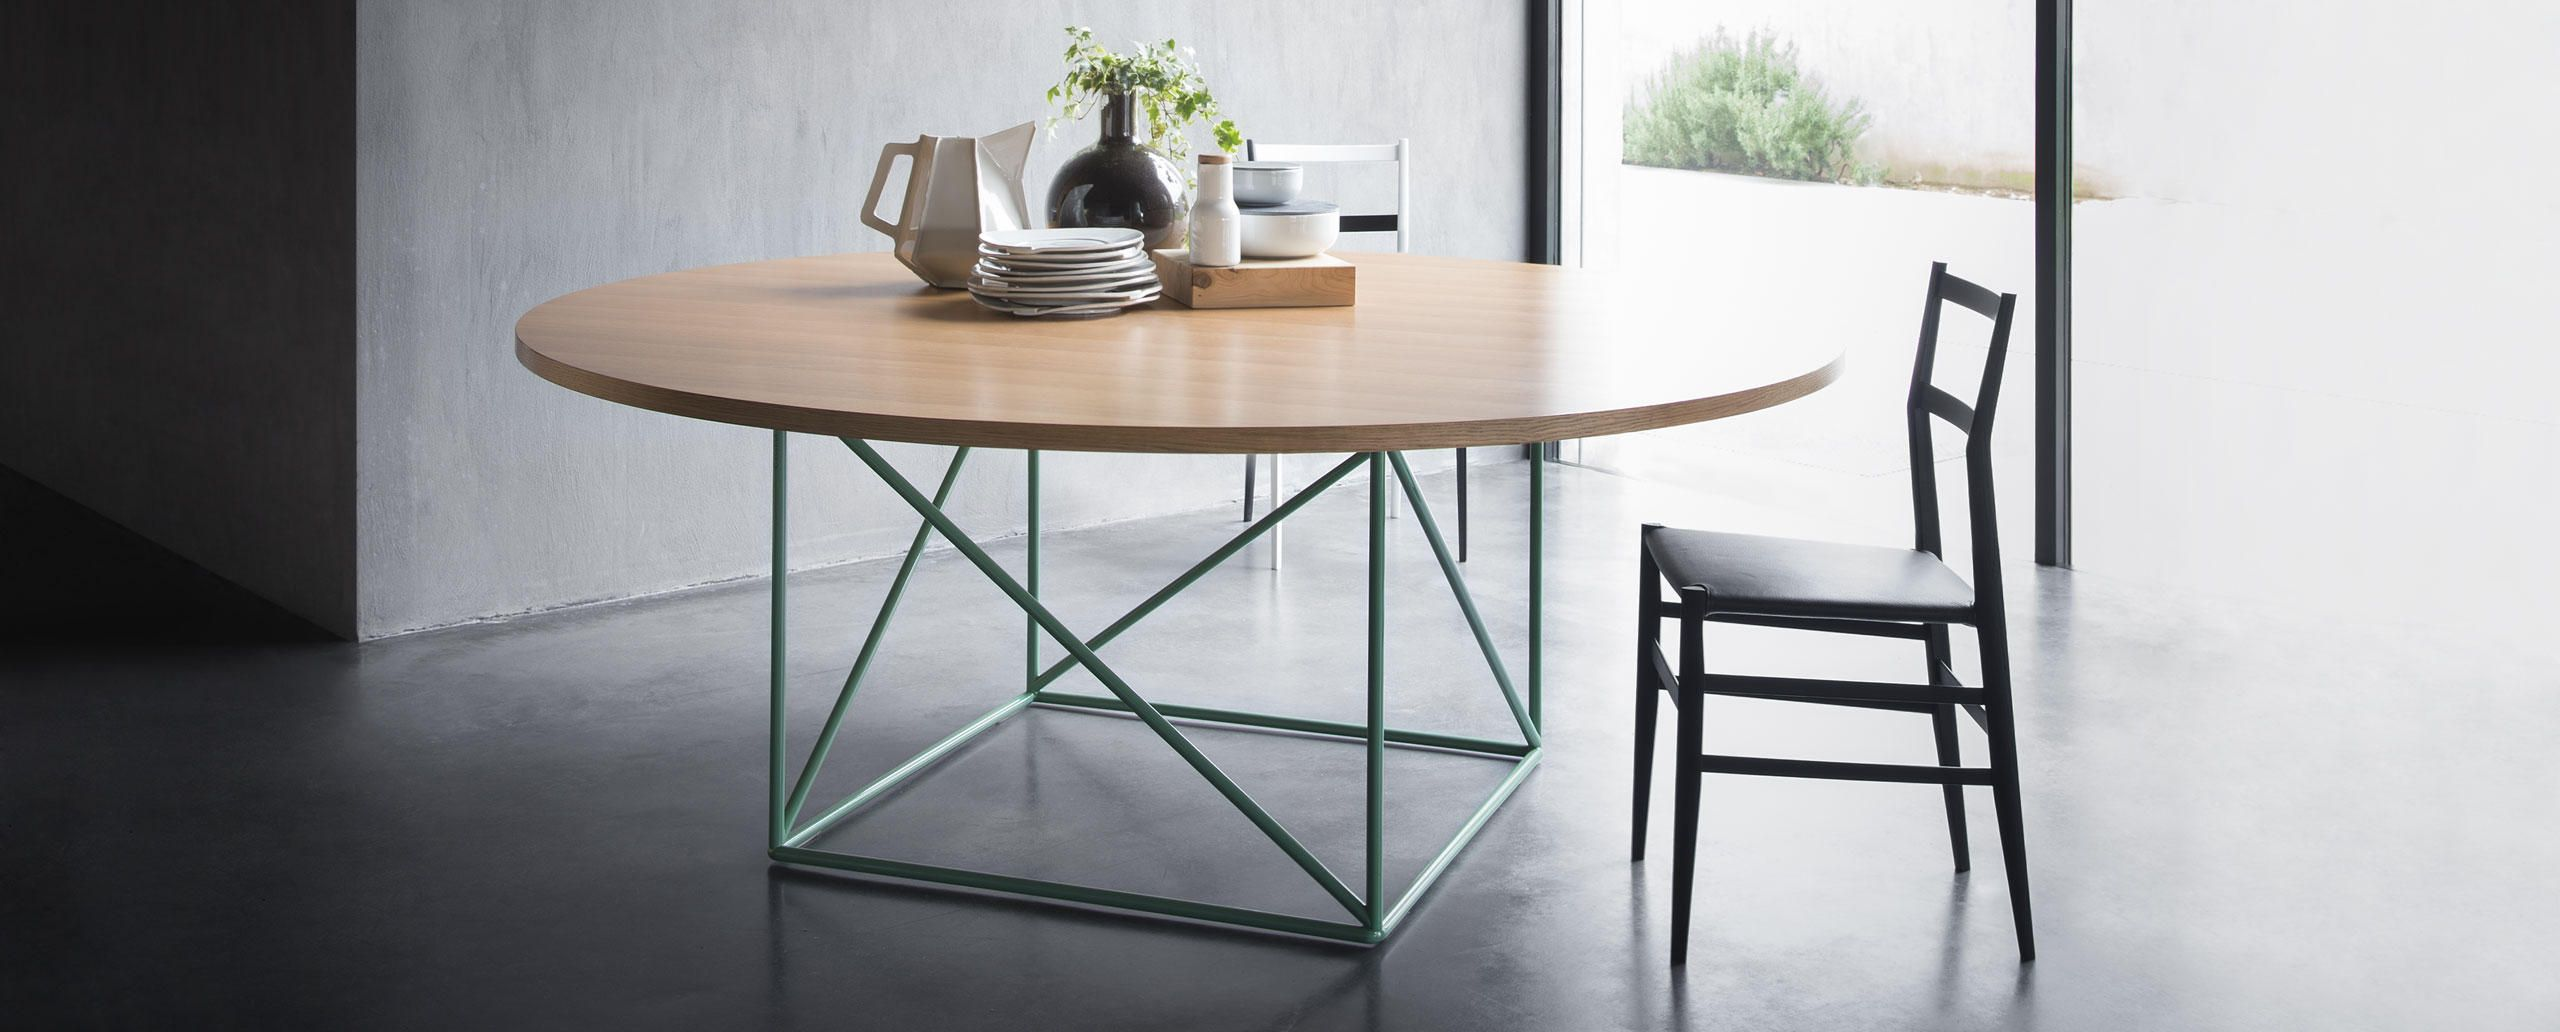 LC15 - Le Corbusier   Cassina   arredi   Pinterest   Tables and Dining